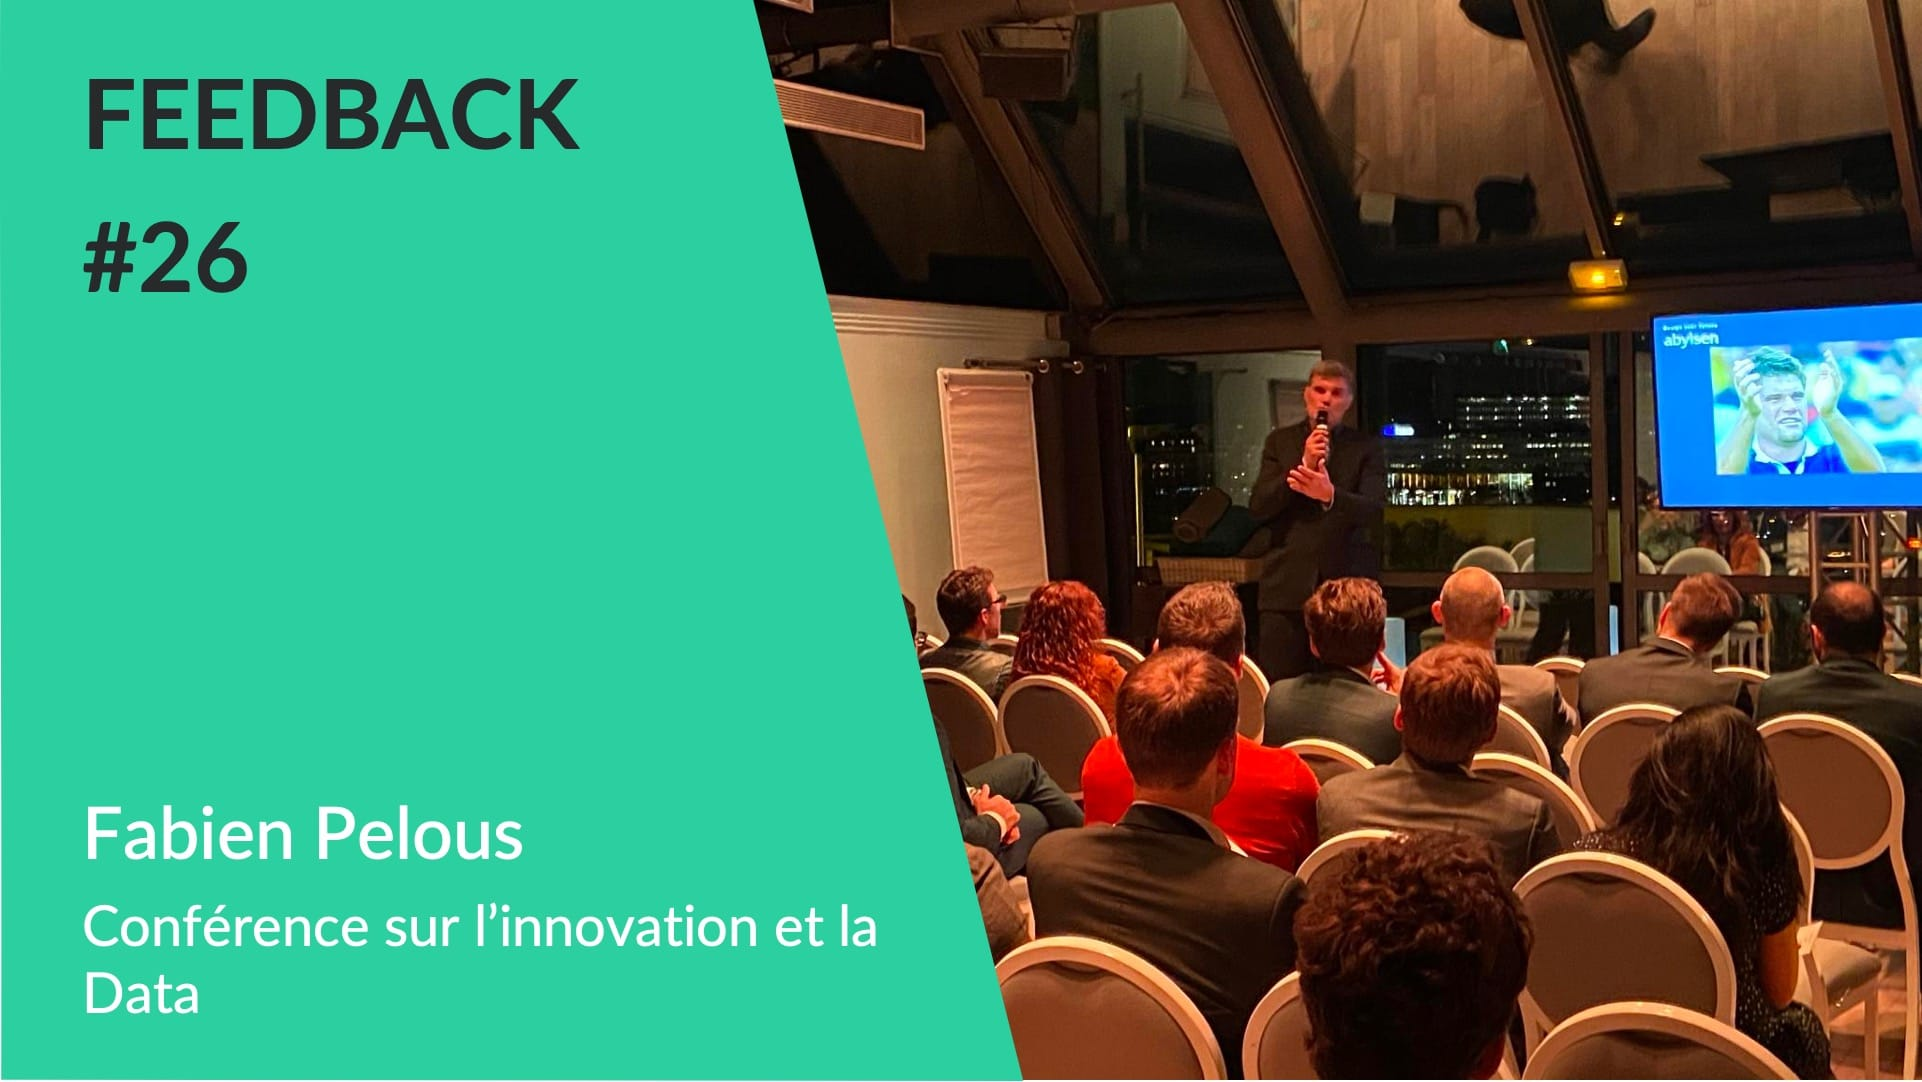 Feedback - Fabien Pelous Conférence Innovation WeChamp